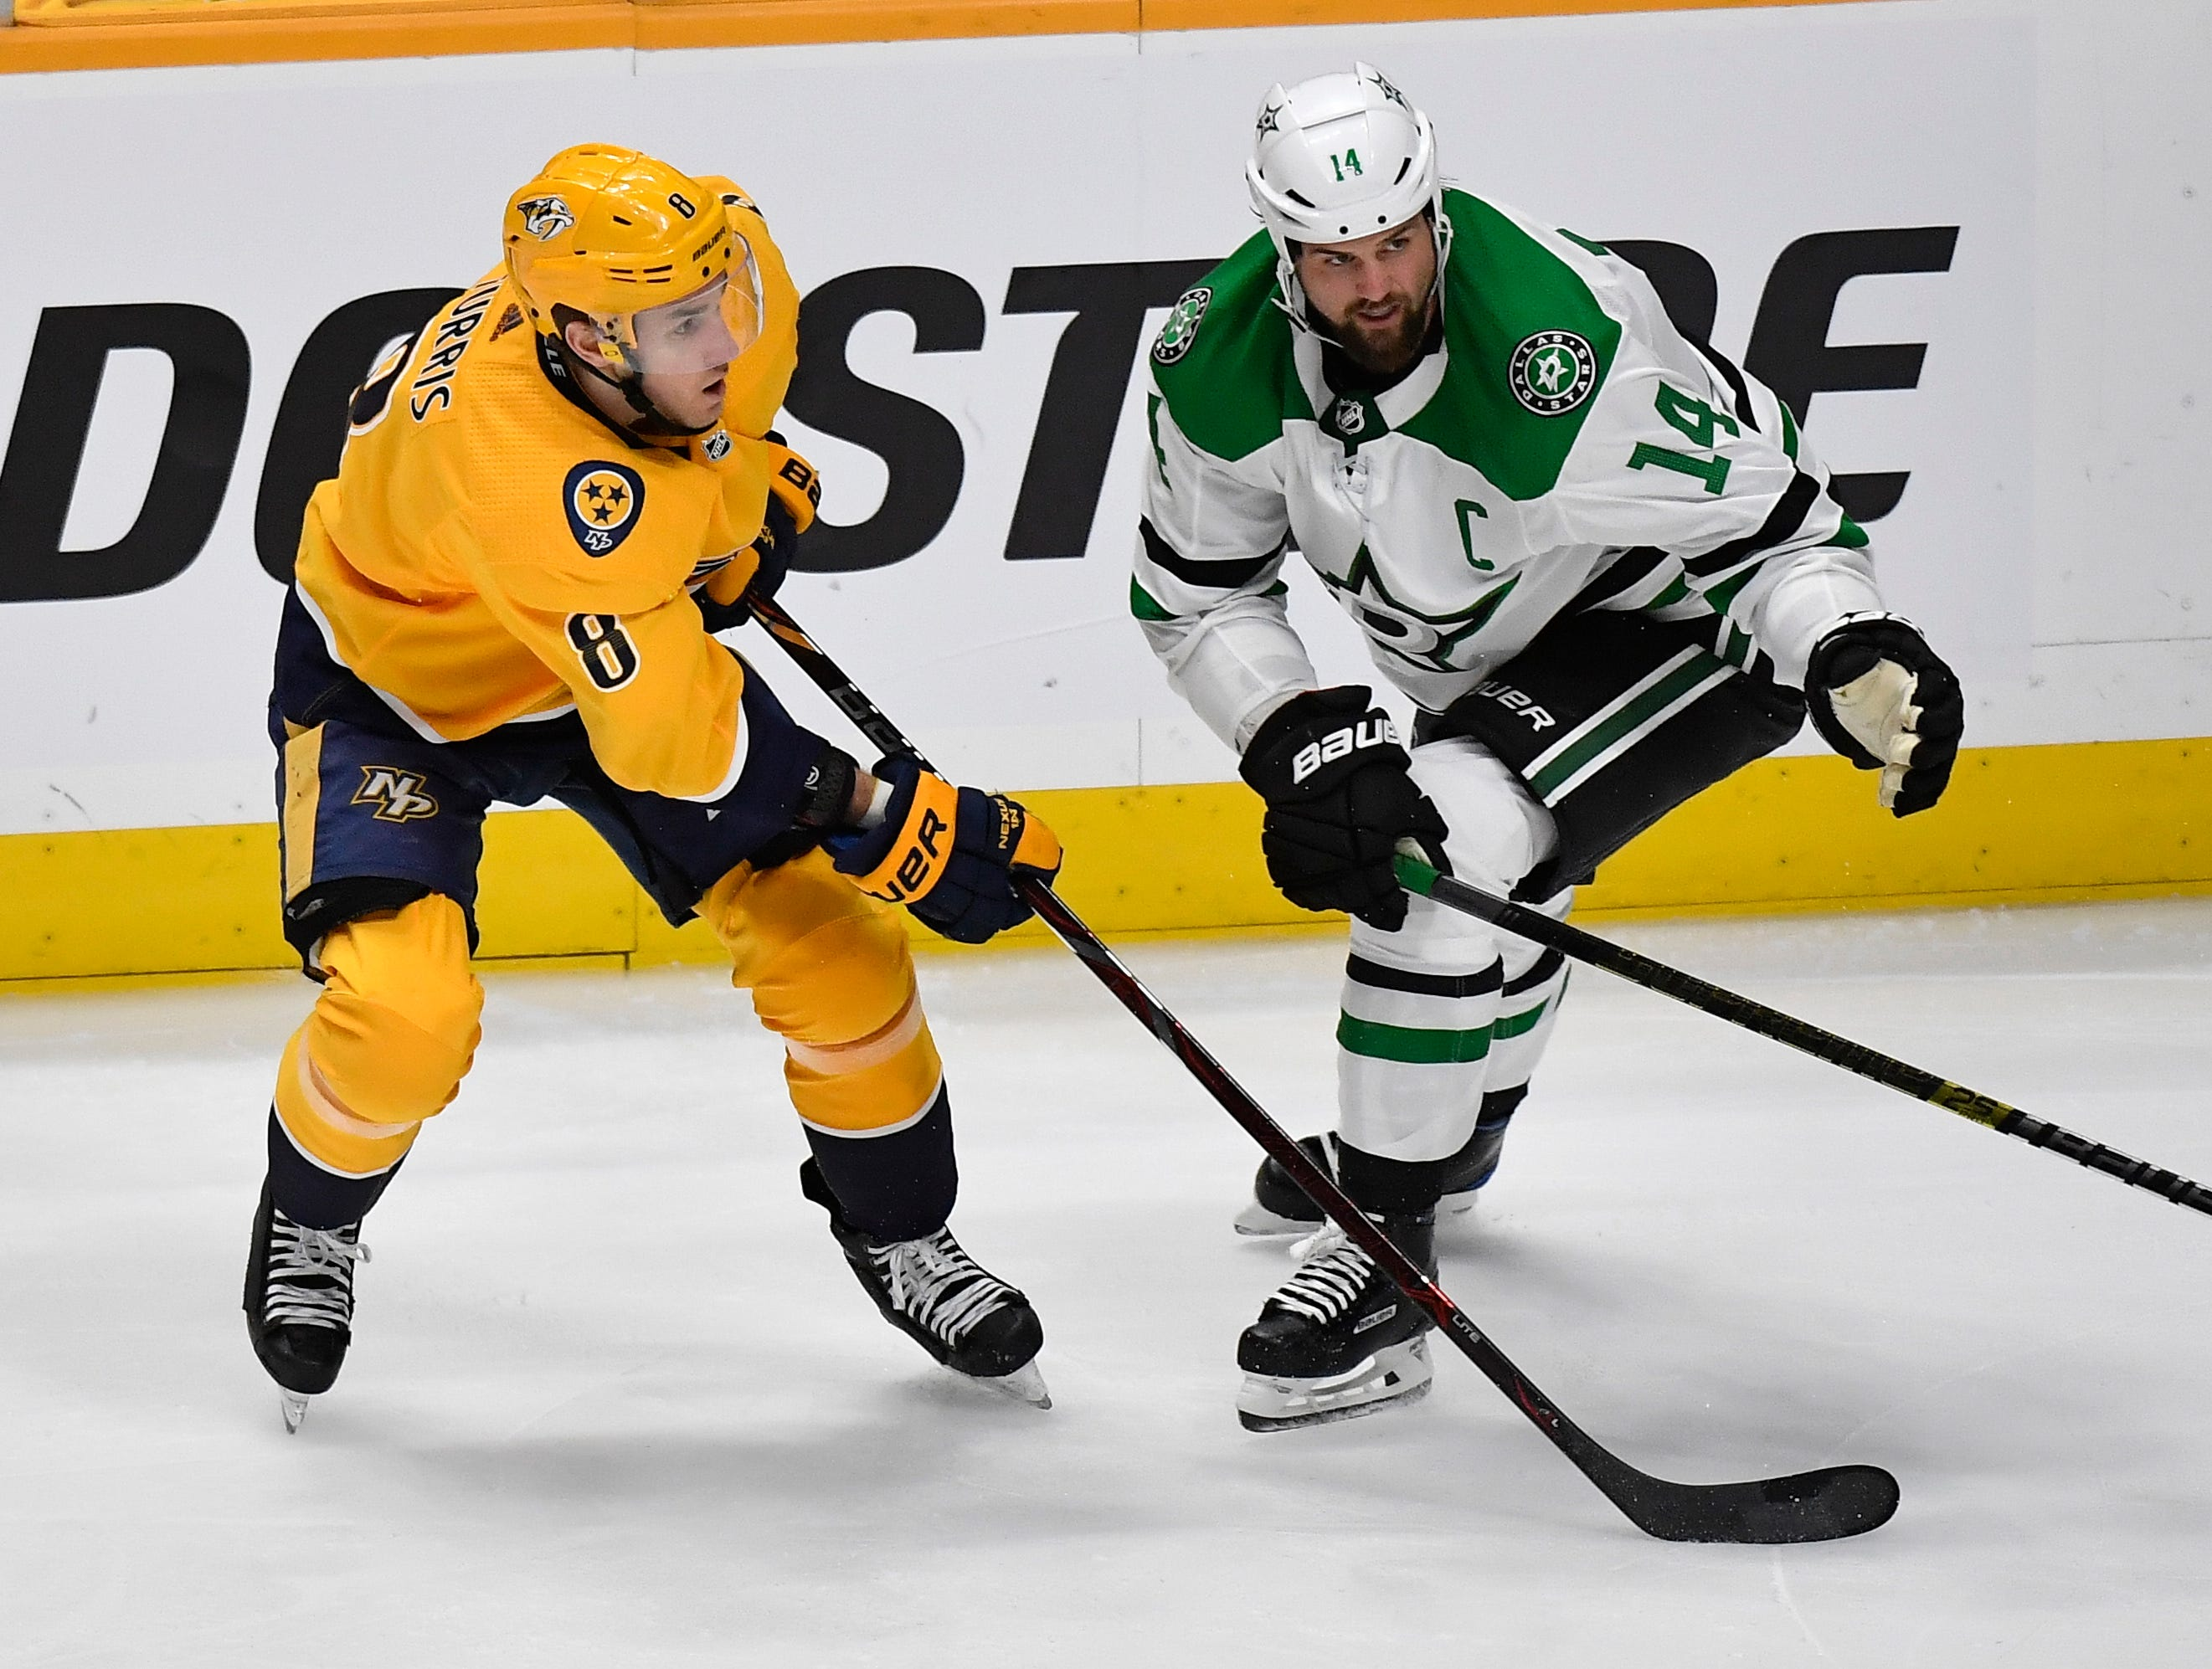 Nashville Predators center Kyle Turris (8) and Dallas Stars left wing Jamie Benn (14) battle for the puck during the third period of the divisional semifinal game at Bridgestone Arena in Nashville, Tenn., Saturday, April 13, 2019.